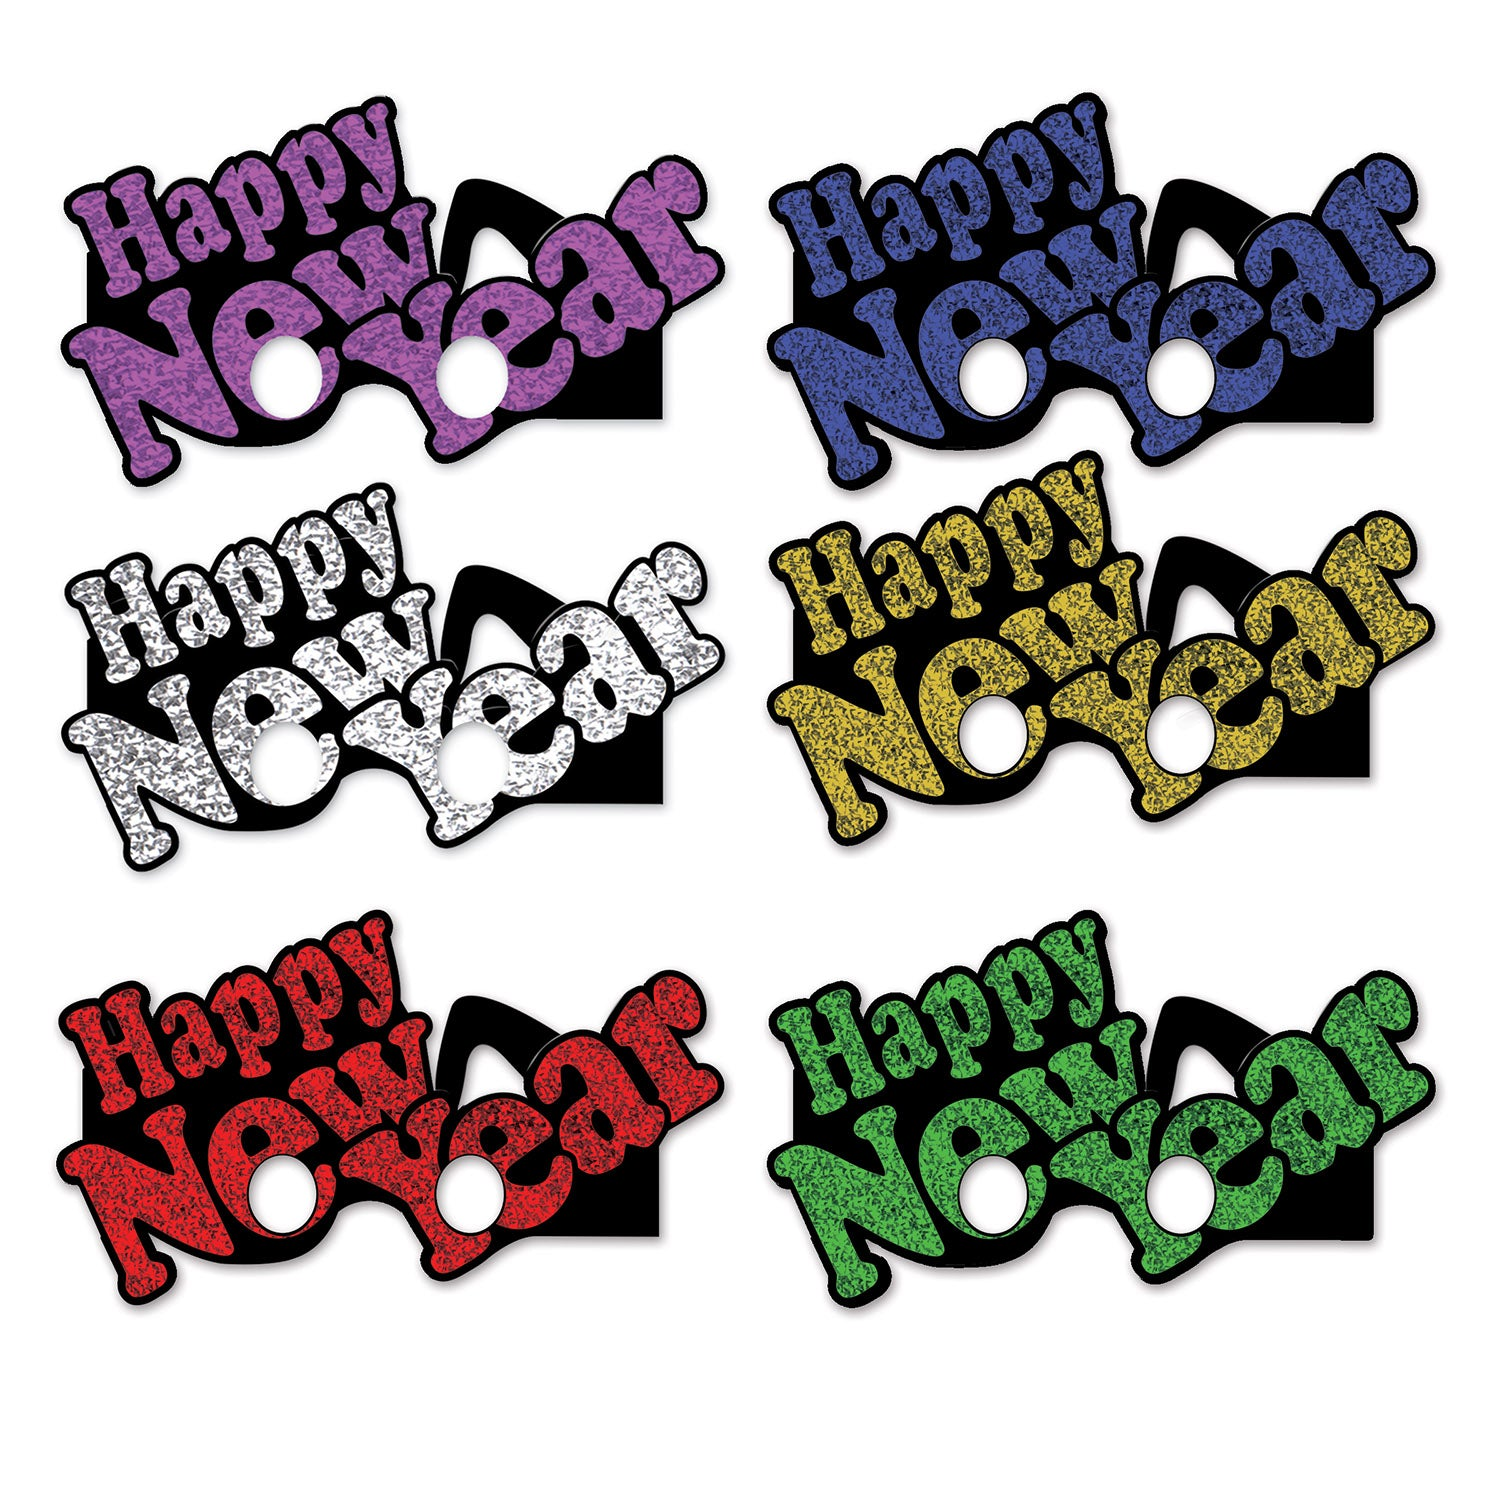 Happy New Year Eyeglasses (6/Pkg), asstd colors; glitter print by Beistle - New Year's Eve Theme Decorations